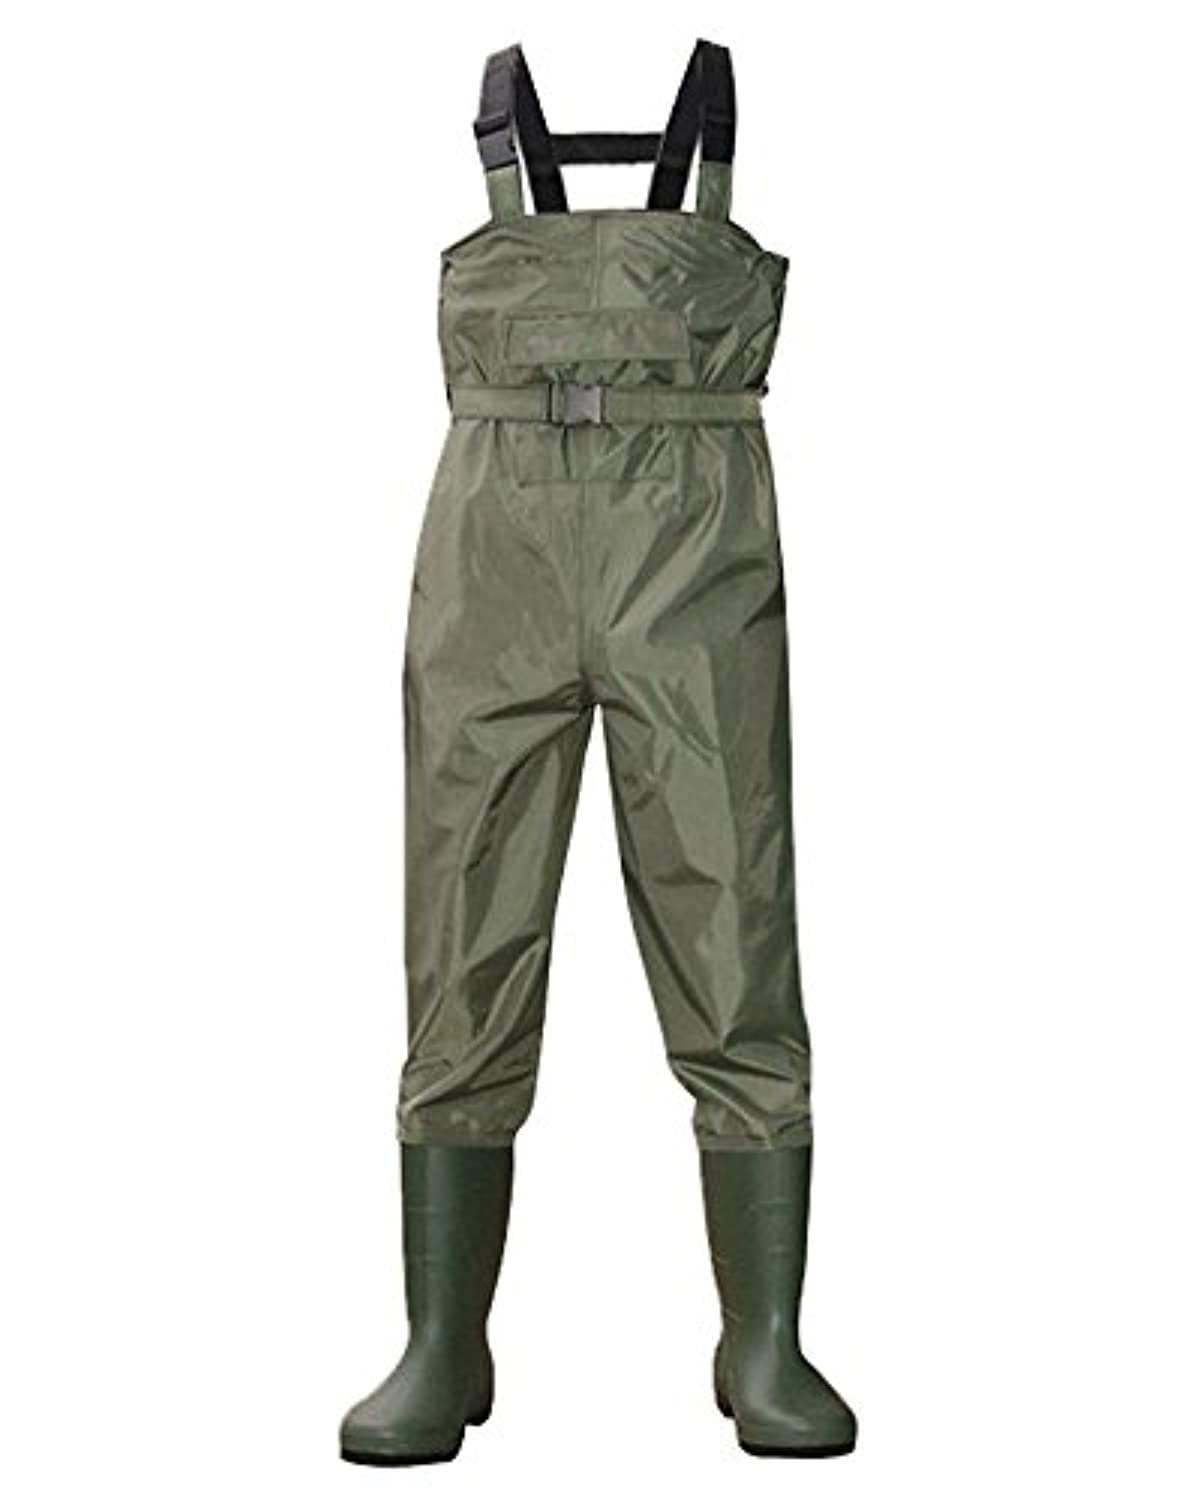 nachvornナイロンアーミーグリーンBootfoot胸釣りハンティングWaders